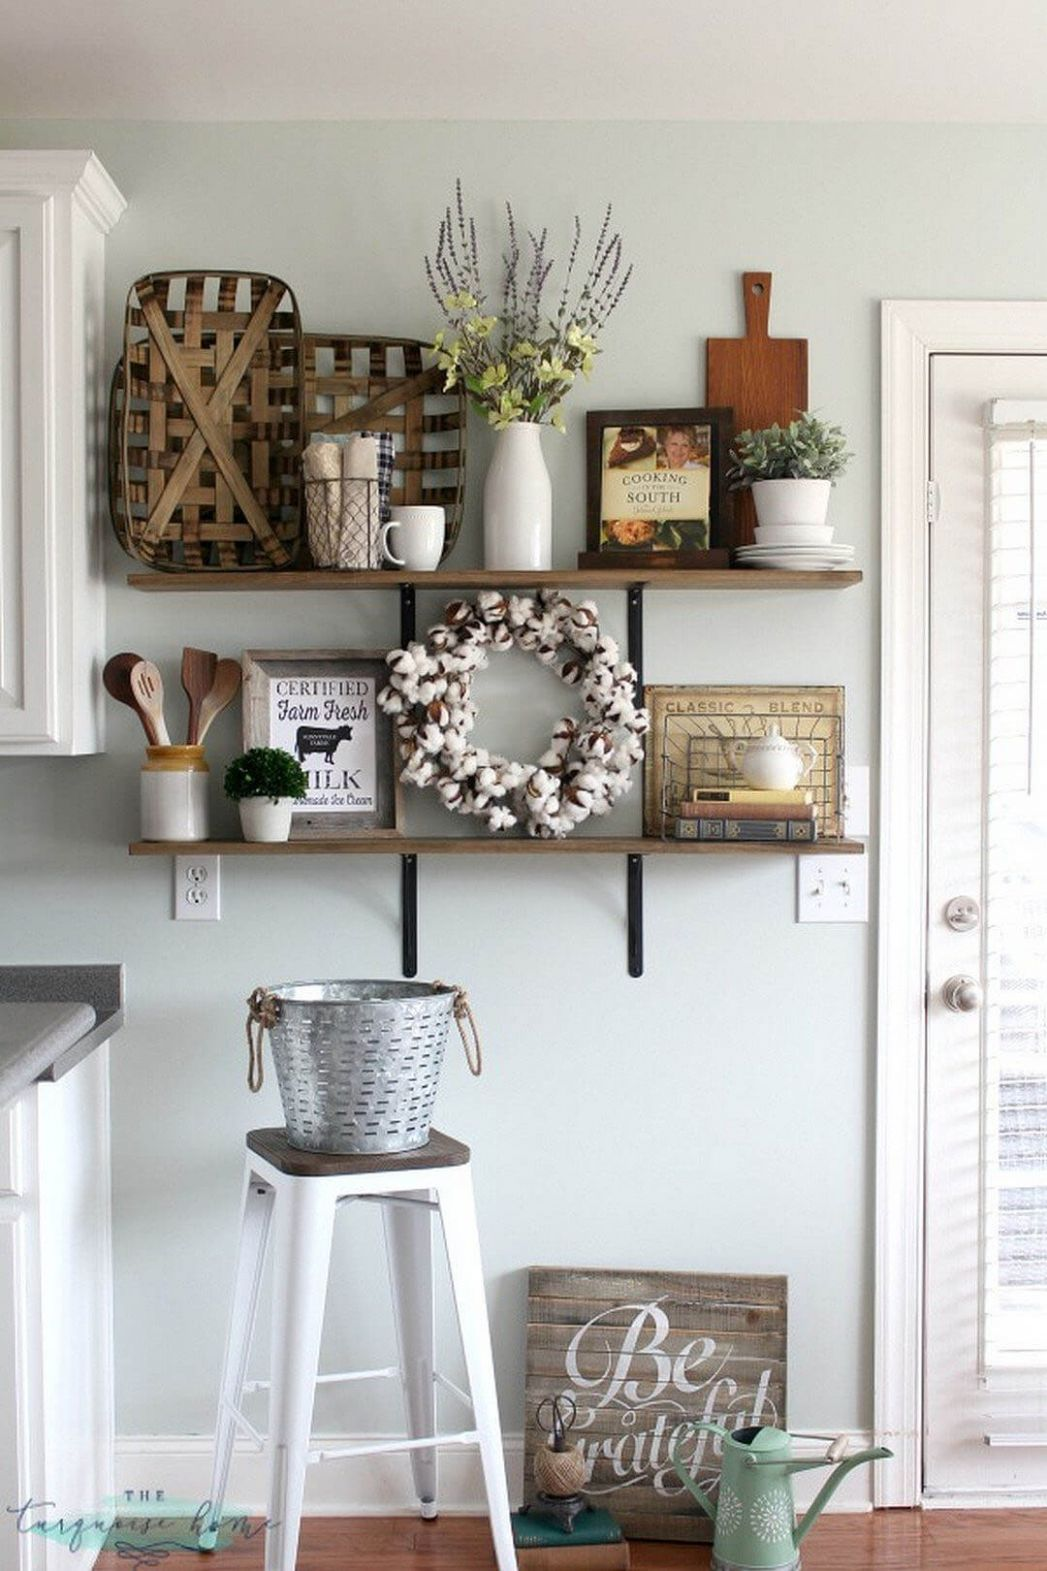 8 Best Kitchen Wall Decor Ideas and Designs for 8